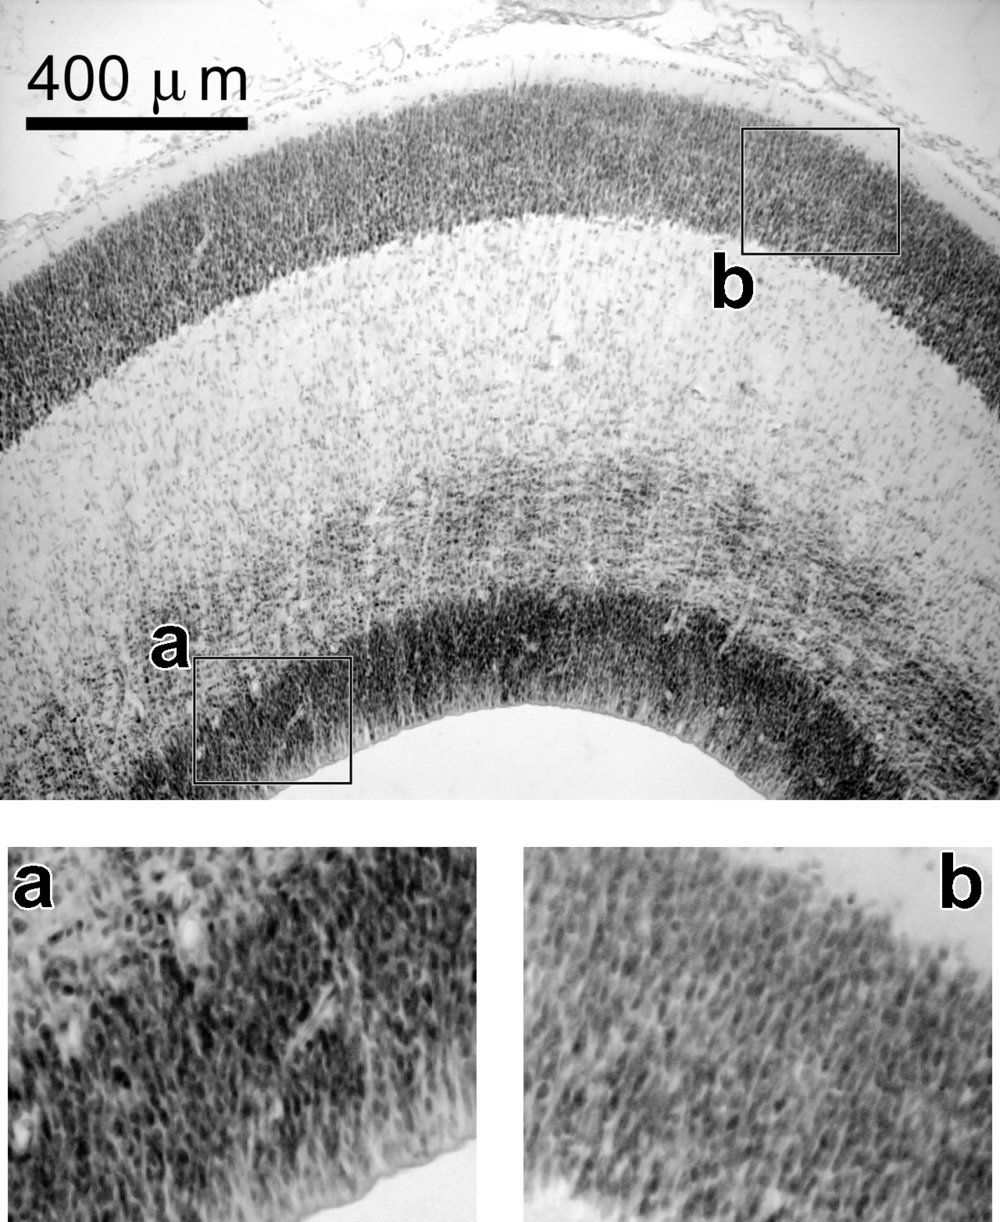 Image: The cerebral cortex is a highly organized brain structure. In early development, brain cells, labeled (a), surround the core cavities of the brain before they migrate to the cortex. They make their way through the white matter of the brain in order to reach the cortical plate (b), or future cerebral cortex. In autism, this process is often disrupted. (Image courtesy of Dr. Manuel Casanova)